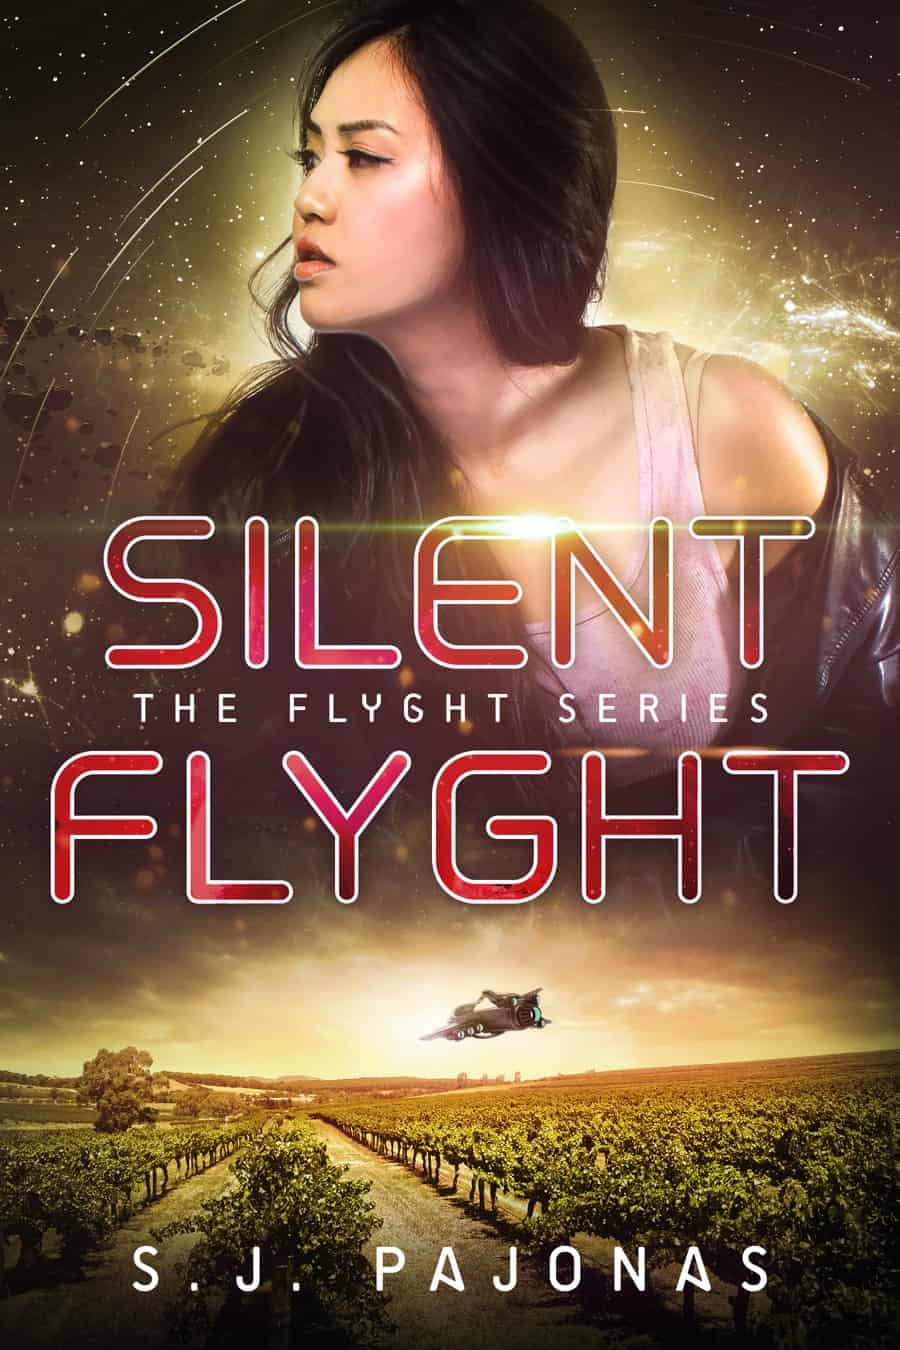 Pre-order SILENT FLYGHT, Book 5 of the Flyght Series, today and continue your journey with Vivian and the crew of the Amagi!